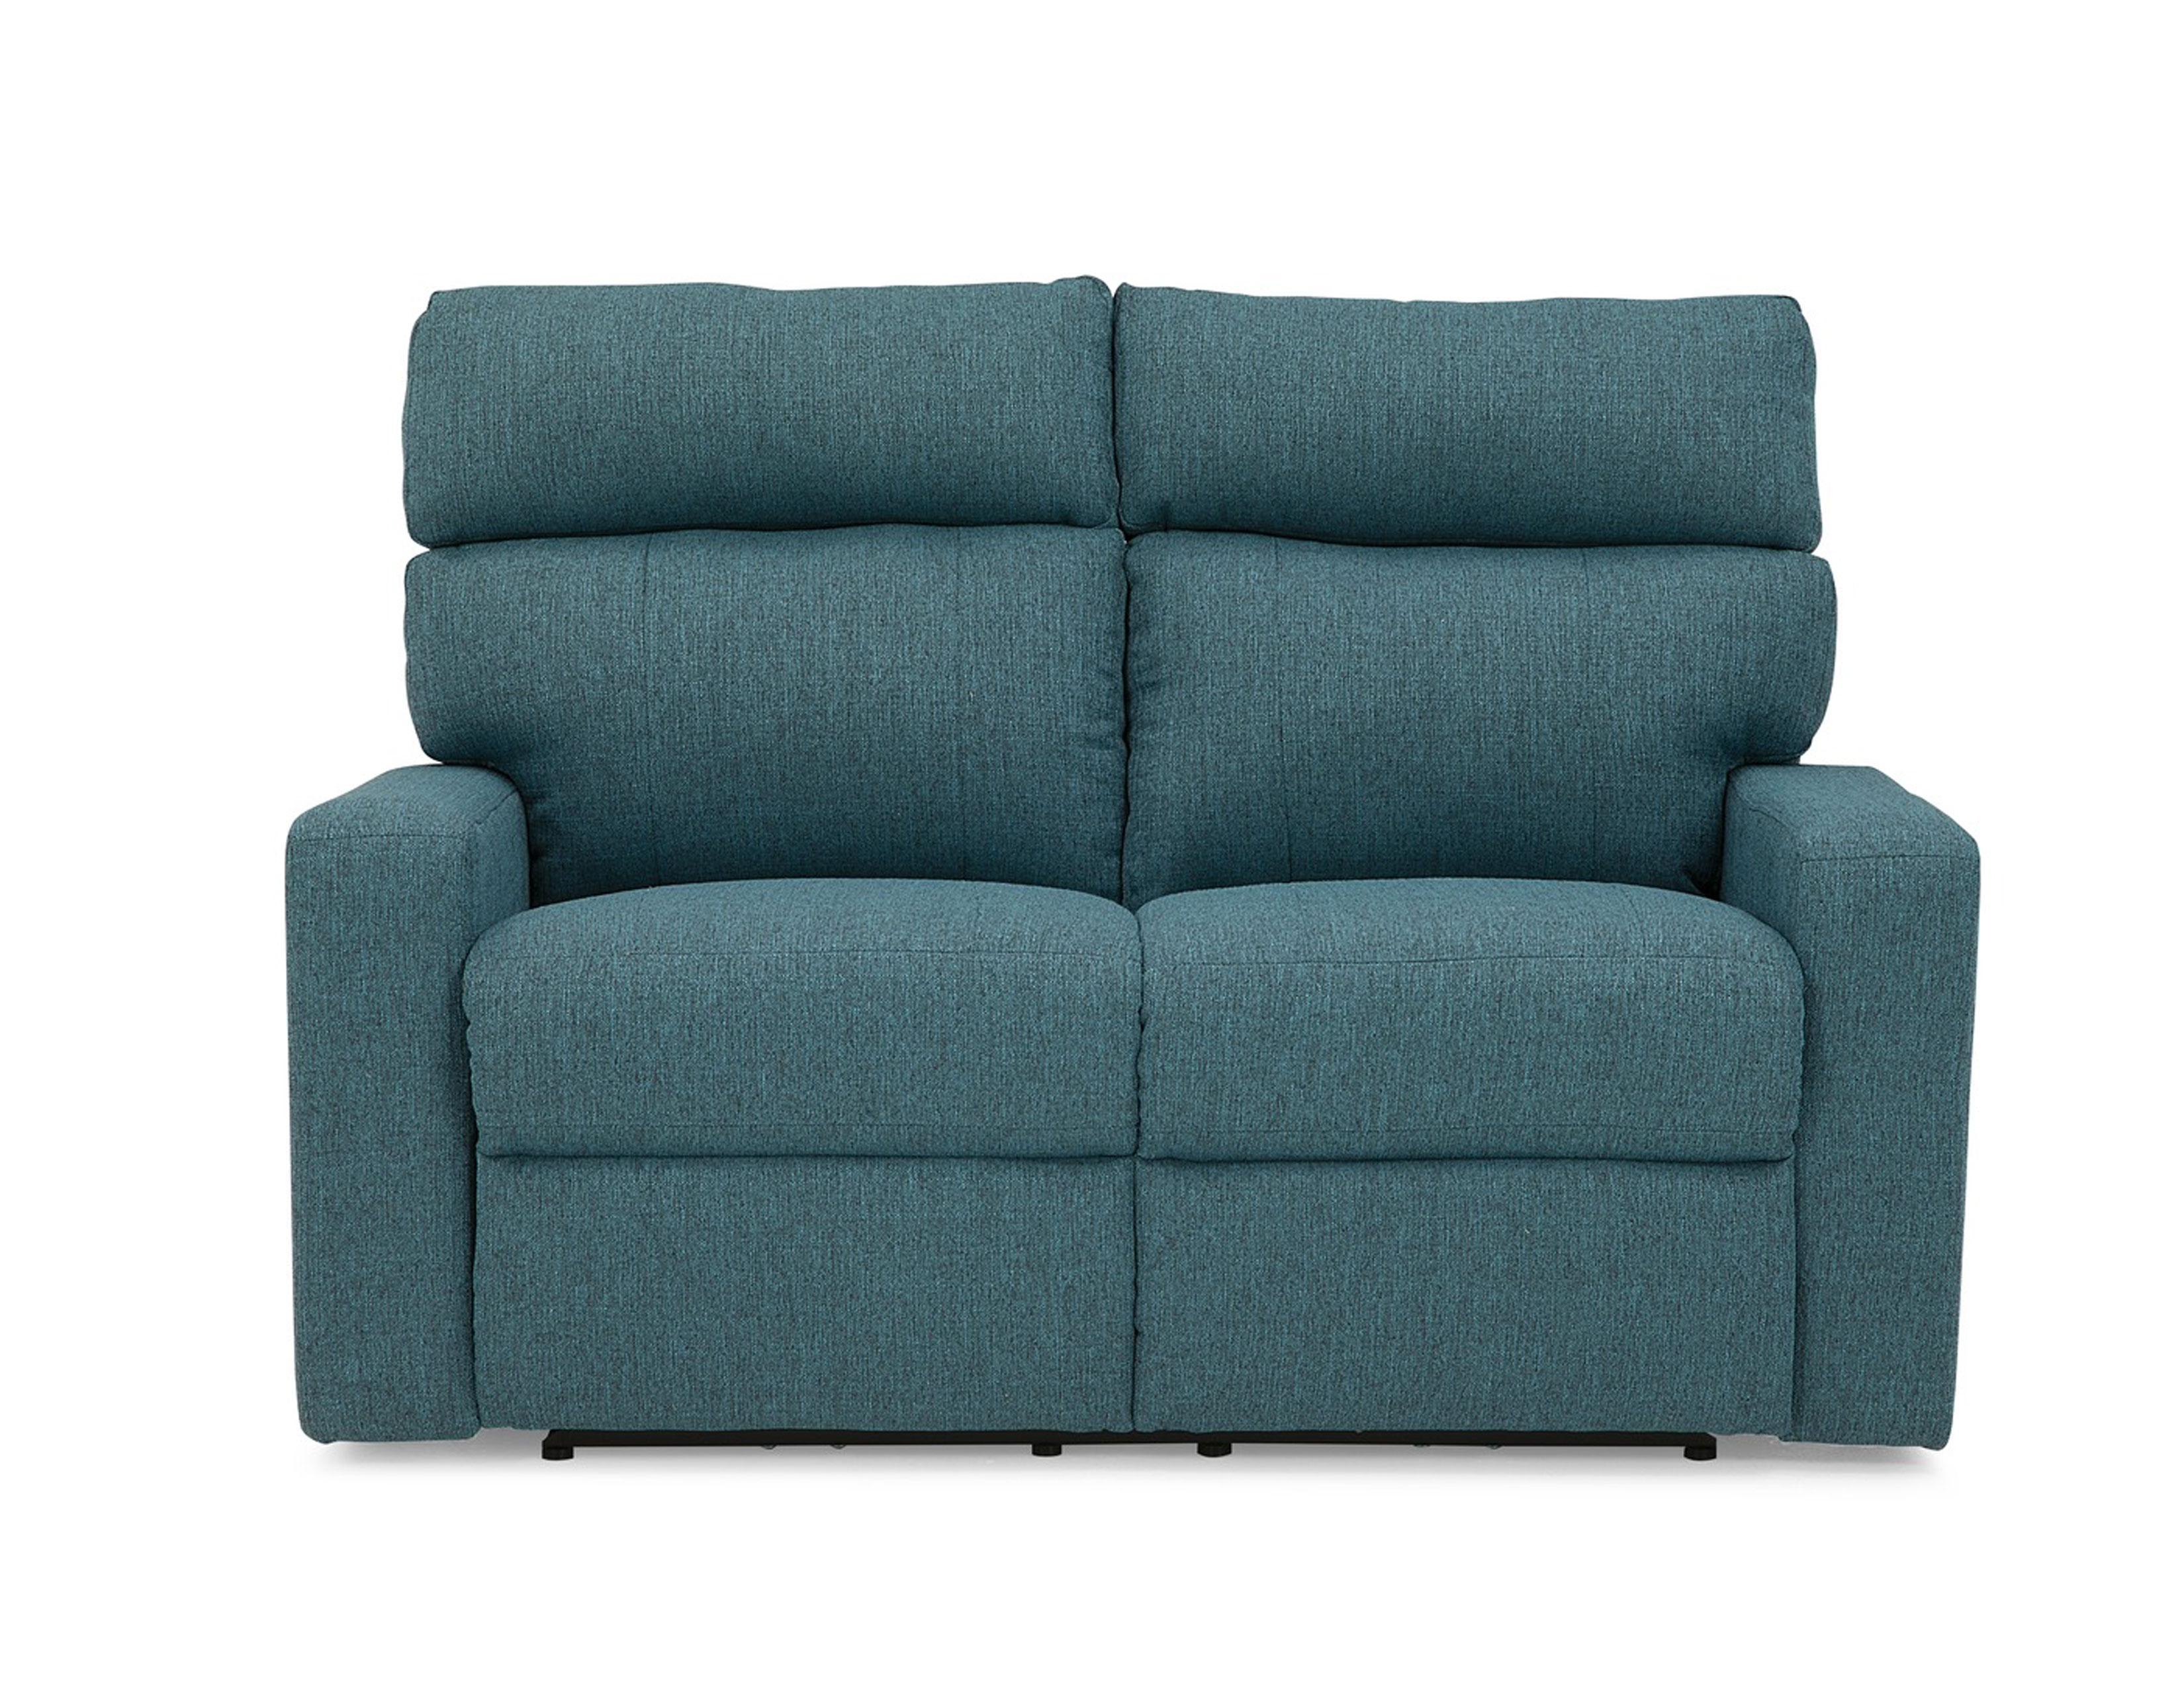 Incredible Oakwood Reclining Sofa Collection 350 Fabrics Sofas And Alphanode Cool Chair Designs And Ideas Alphanodeonline